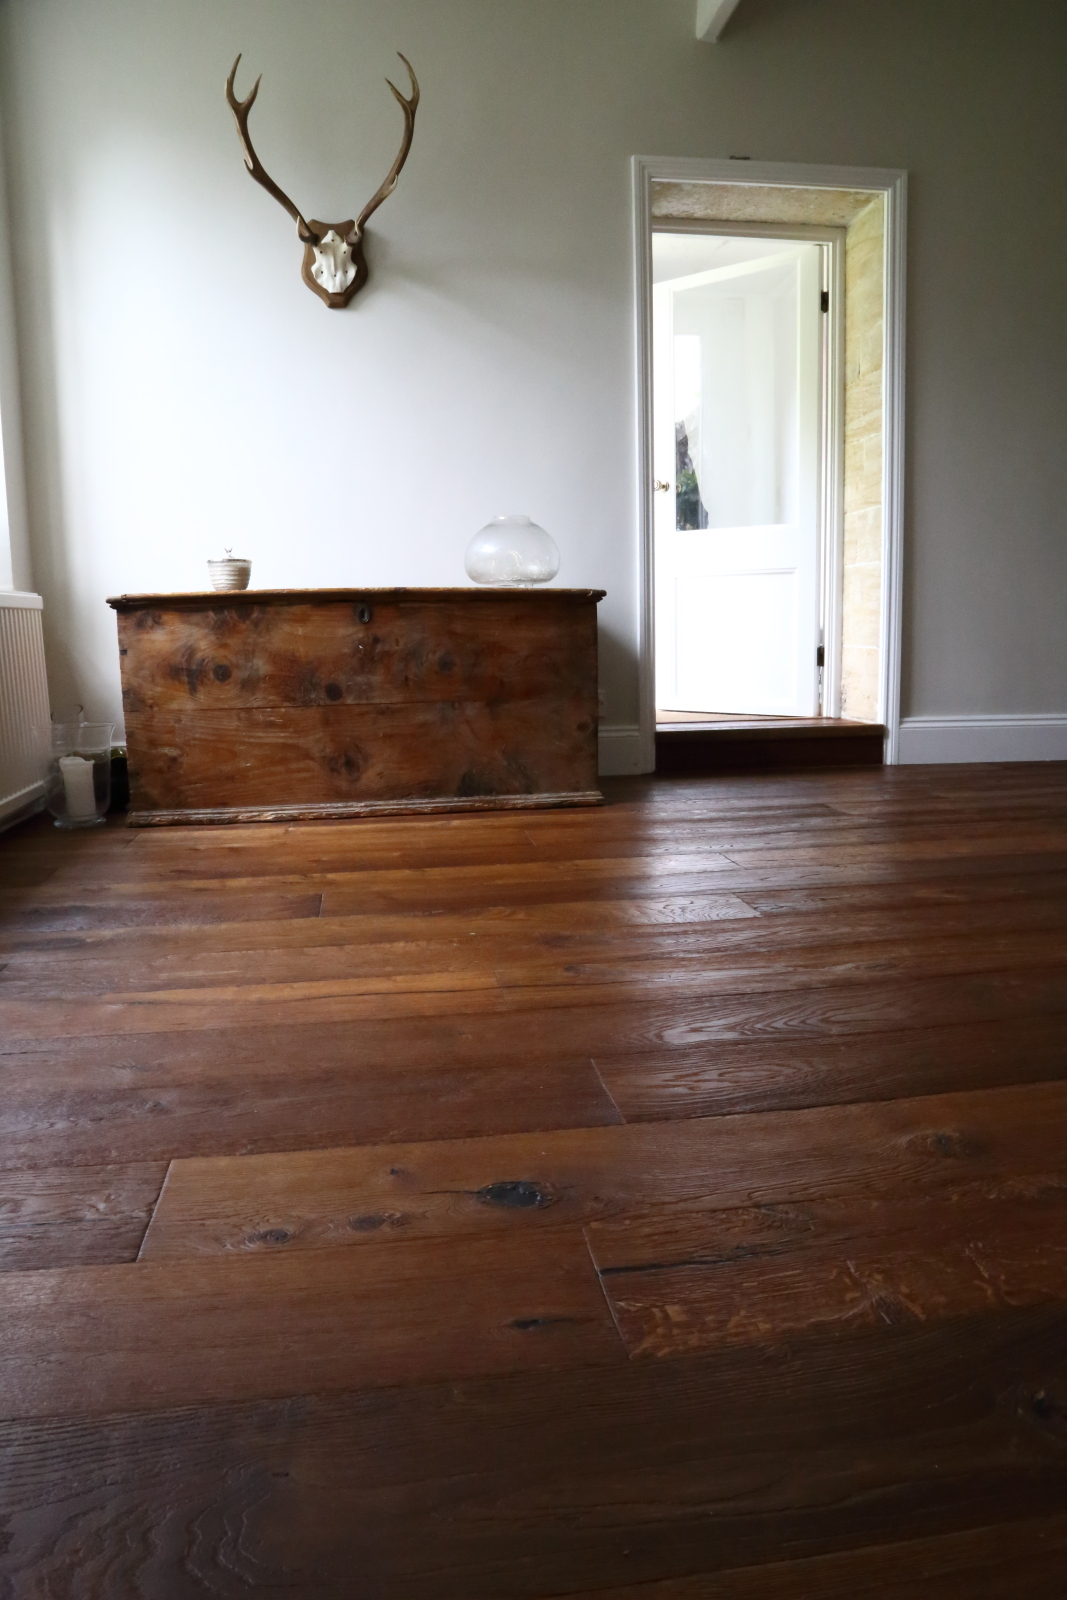 Distressed oak flooring Product Code HC7350 - this beautiful European oak engineered flooring is hand finished in Italy to a very high standard. Contact Hicraft Flooring for more details